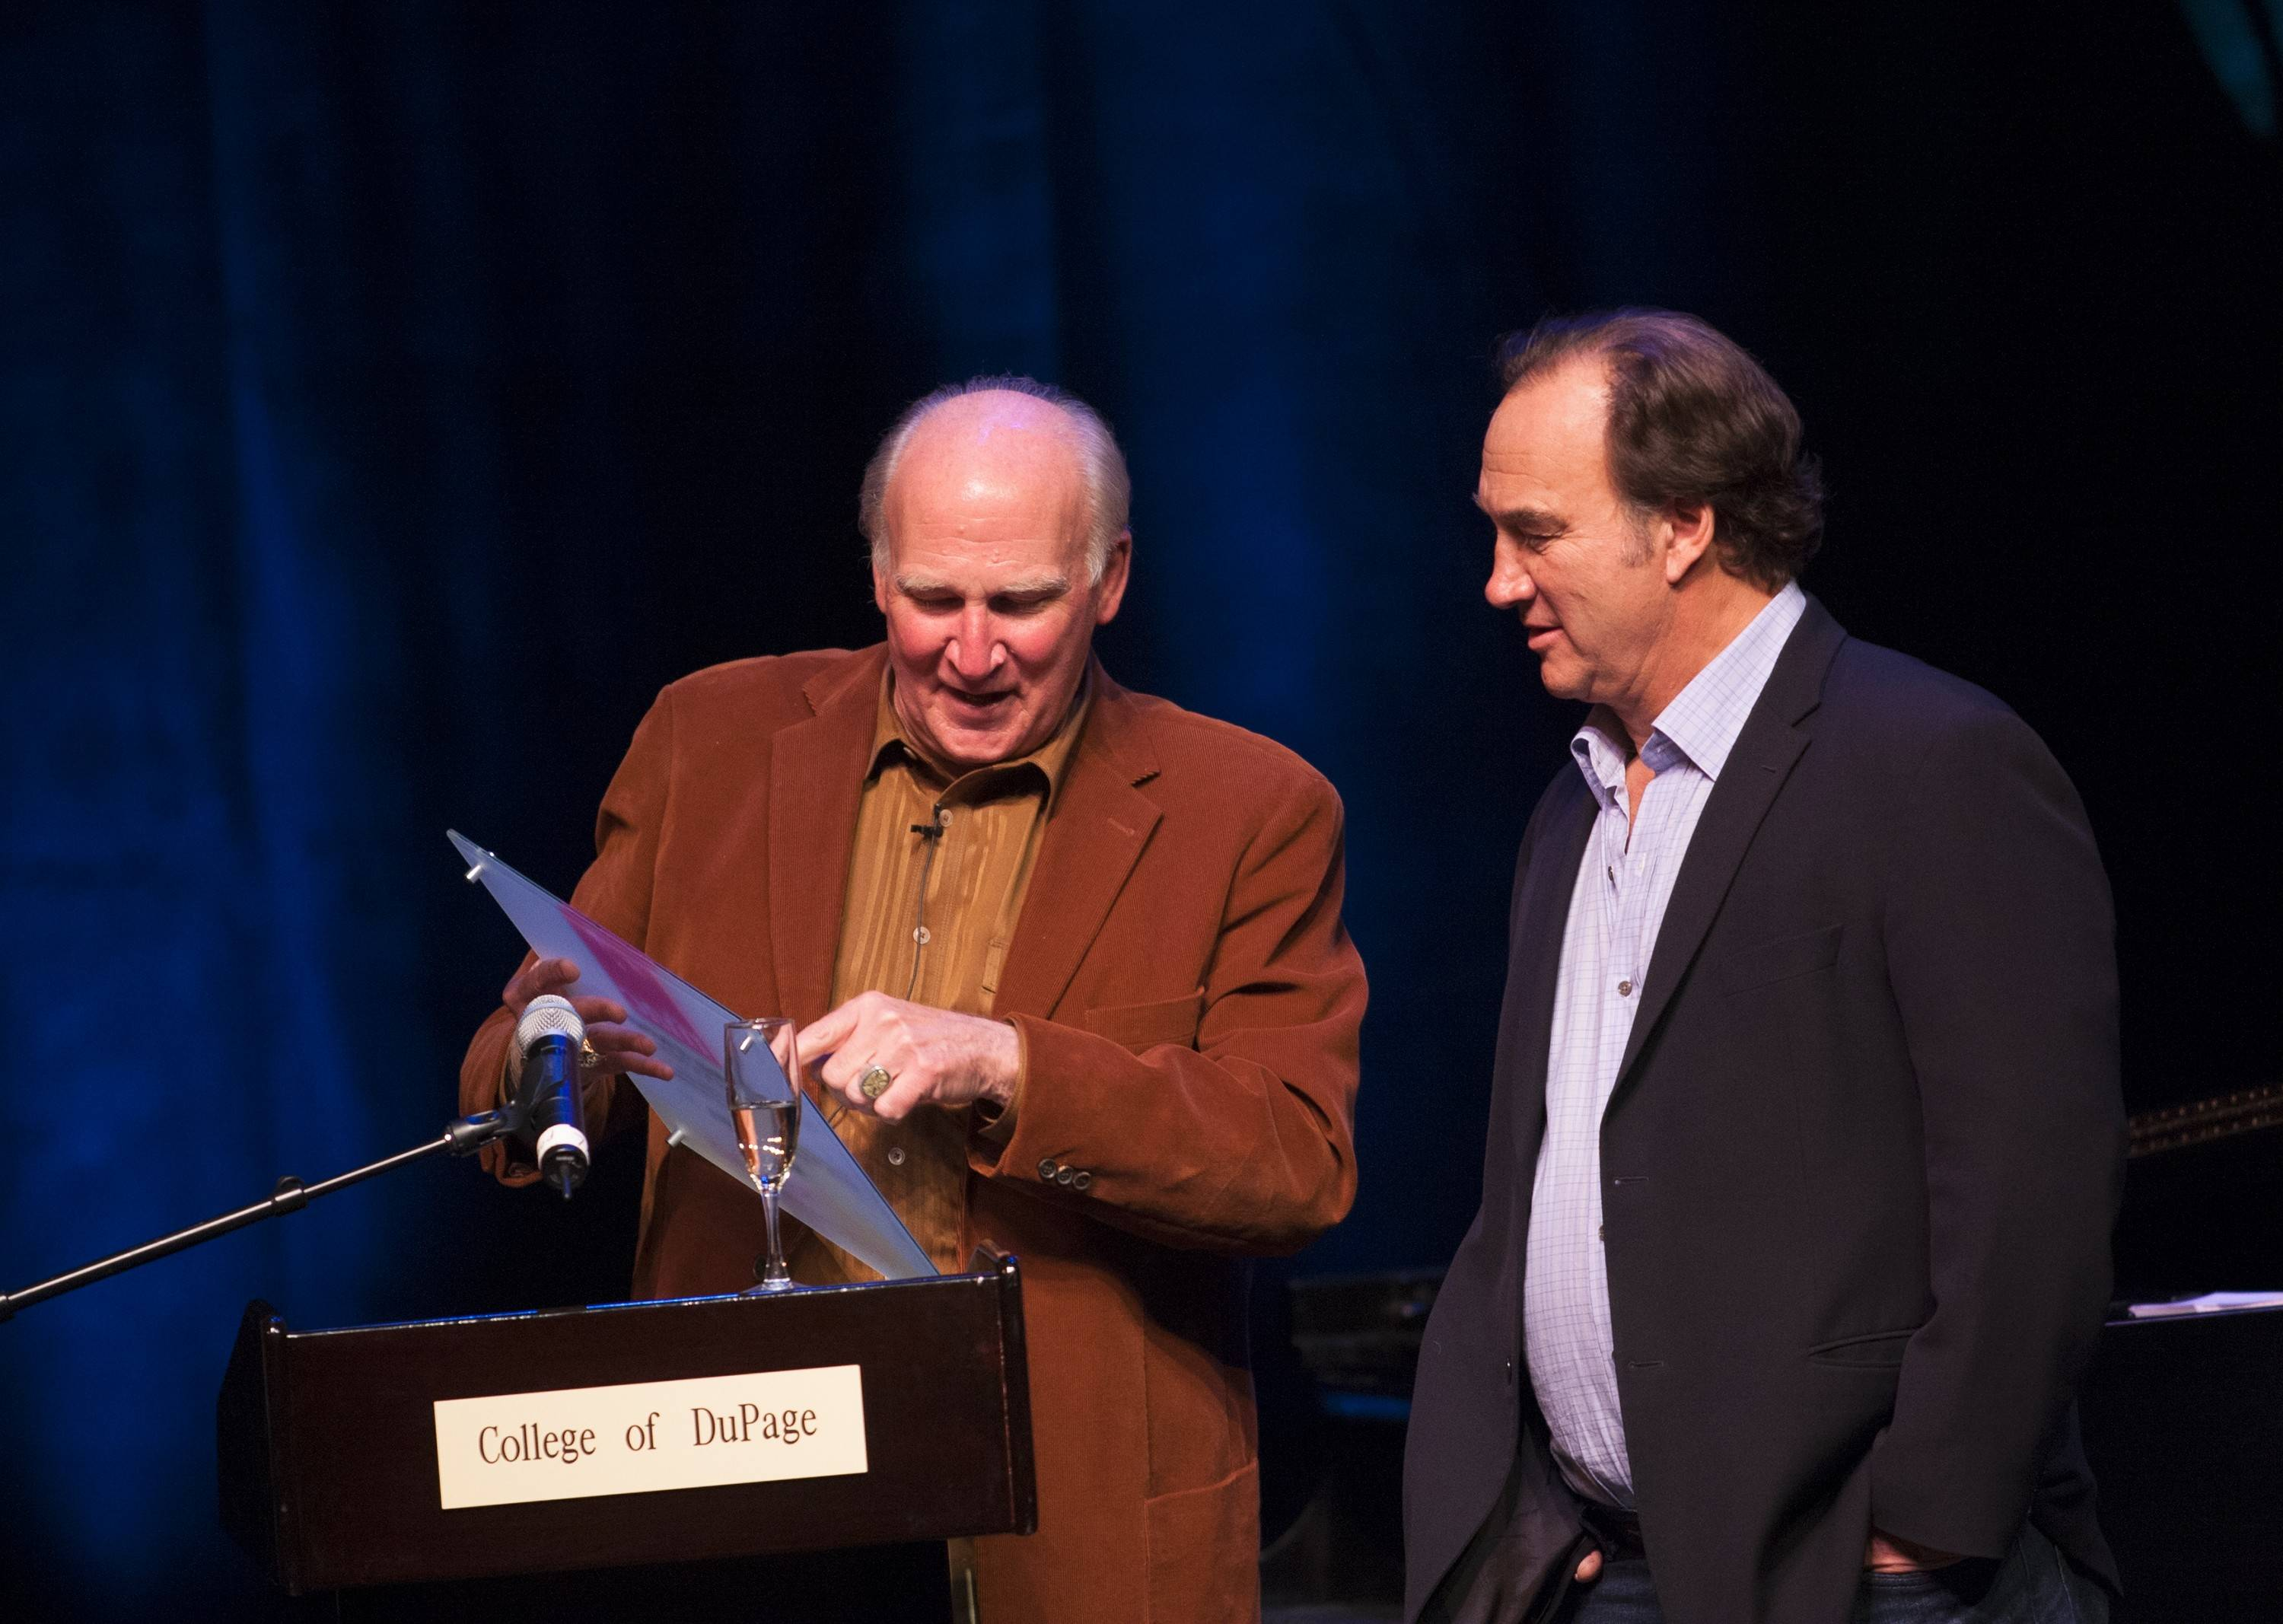 College of DuPage President Robert L. Breuder on Saturday announced that the performance hall at the college's McAninch Arts Center has been renamed after Jim Belushi, right, and his late brother, John. Jim Belushi graduated from the college in 1974.